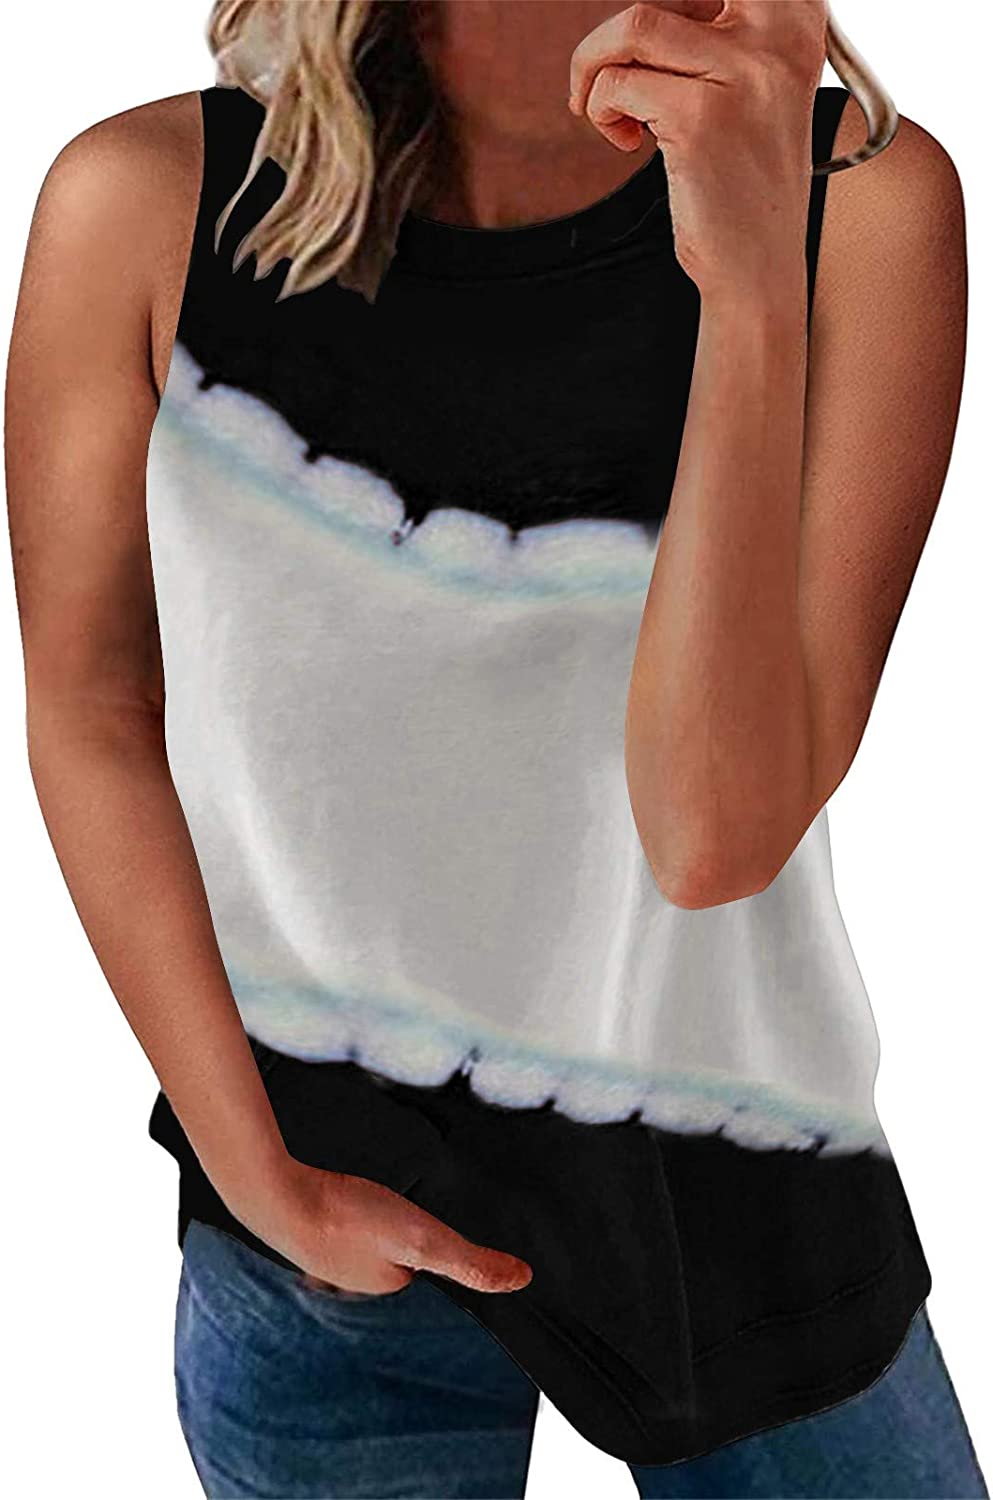 AODONG Tank Tops for Women, Womens Casual Summer Sleeveless Loose Fit Graphic Blouses Tops Tank Shirts Tunics Vest